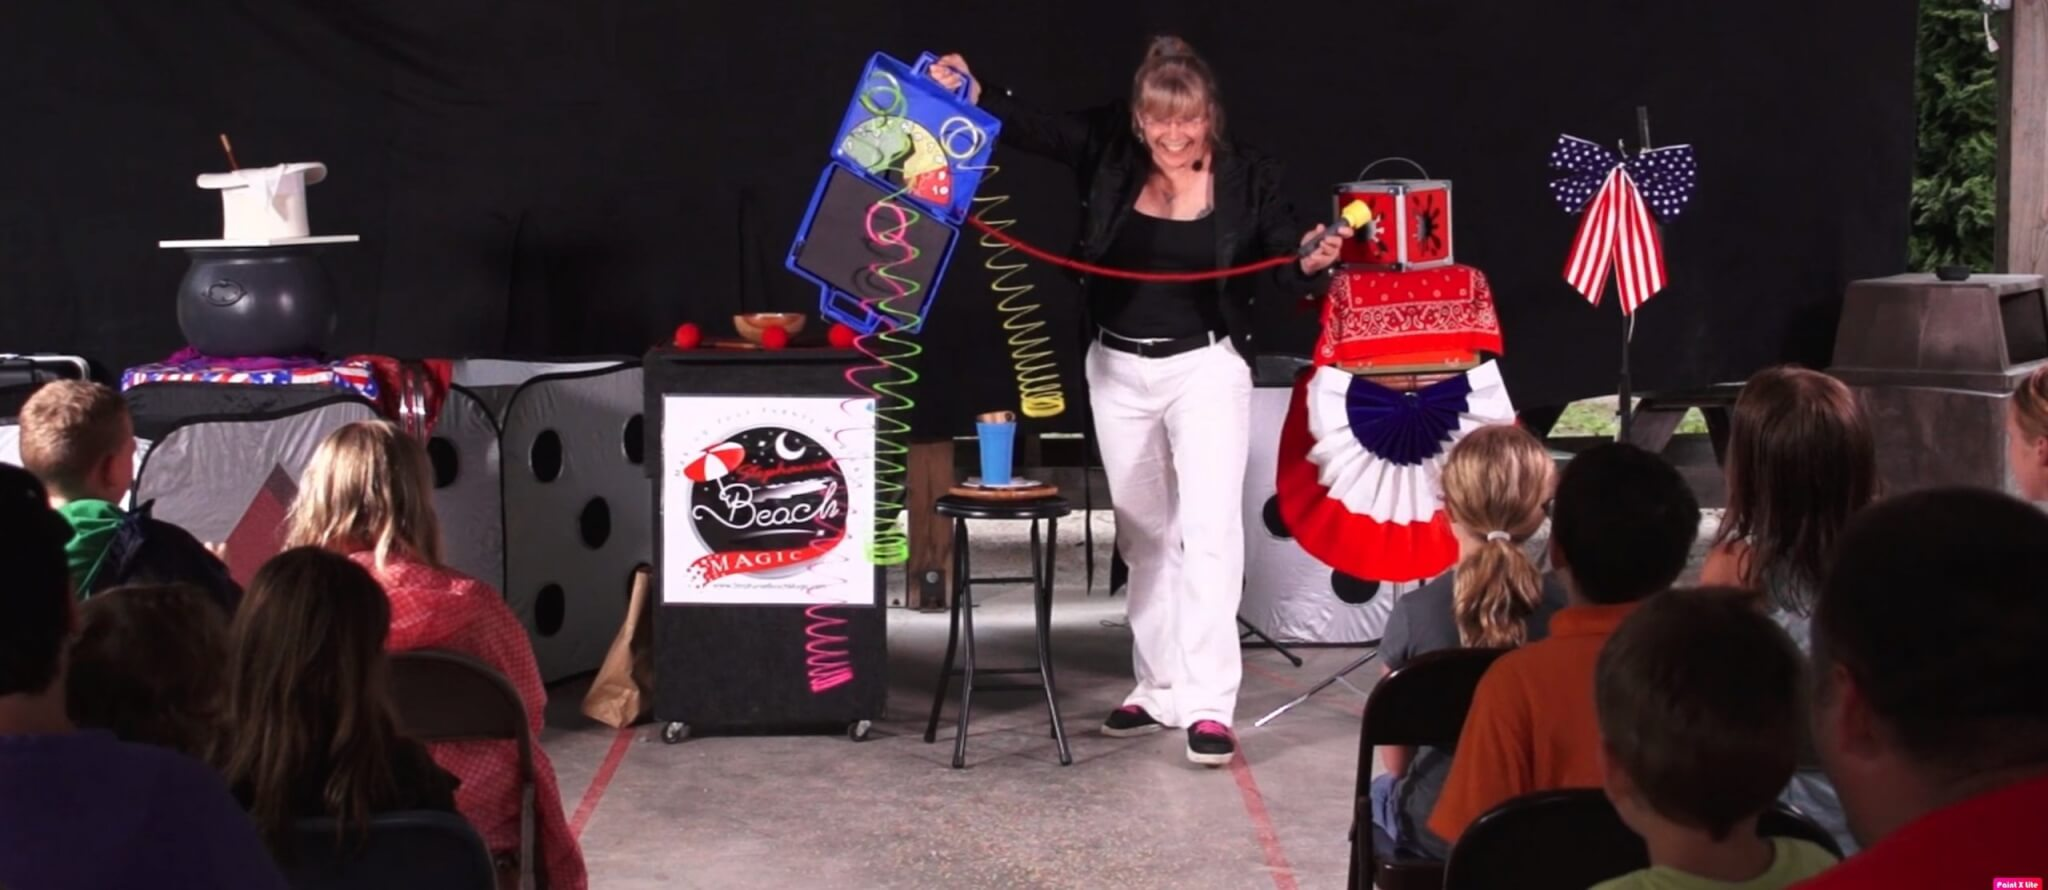 Magician Stephanie Beach performs for a crowd at a local campground.